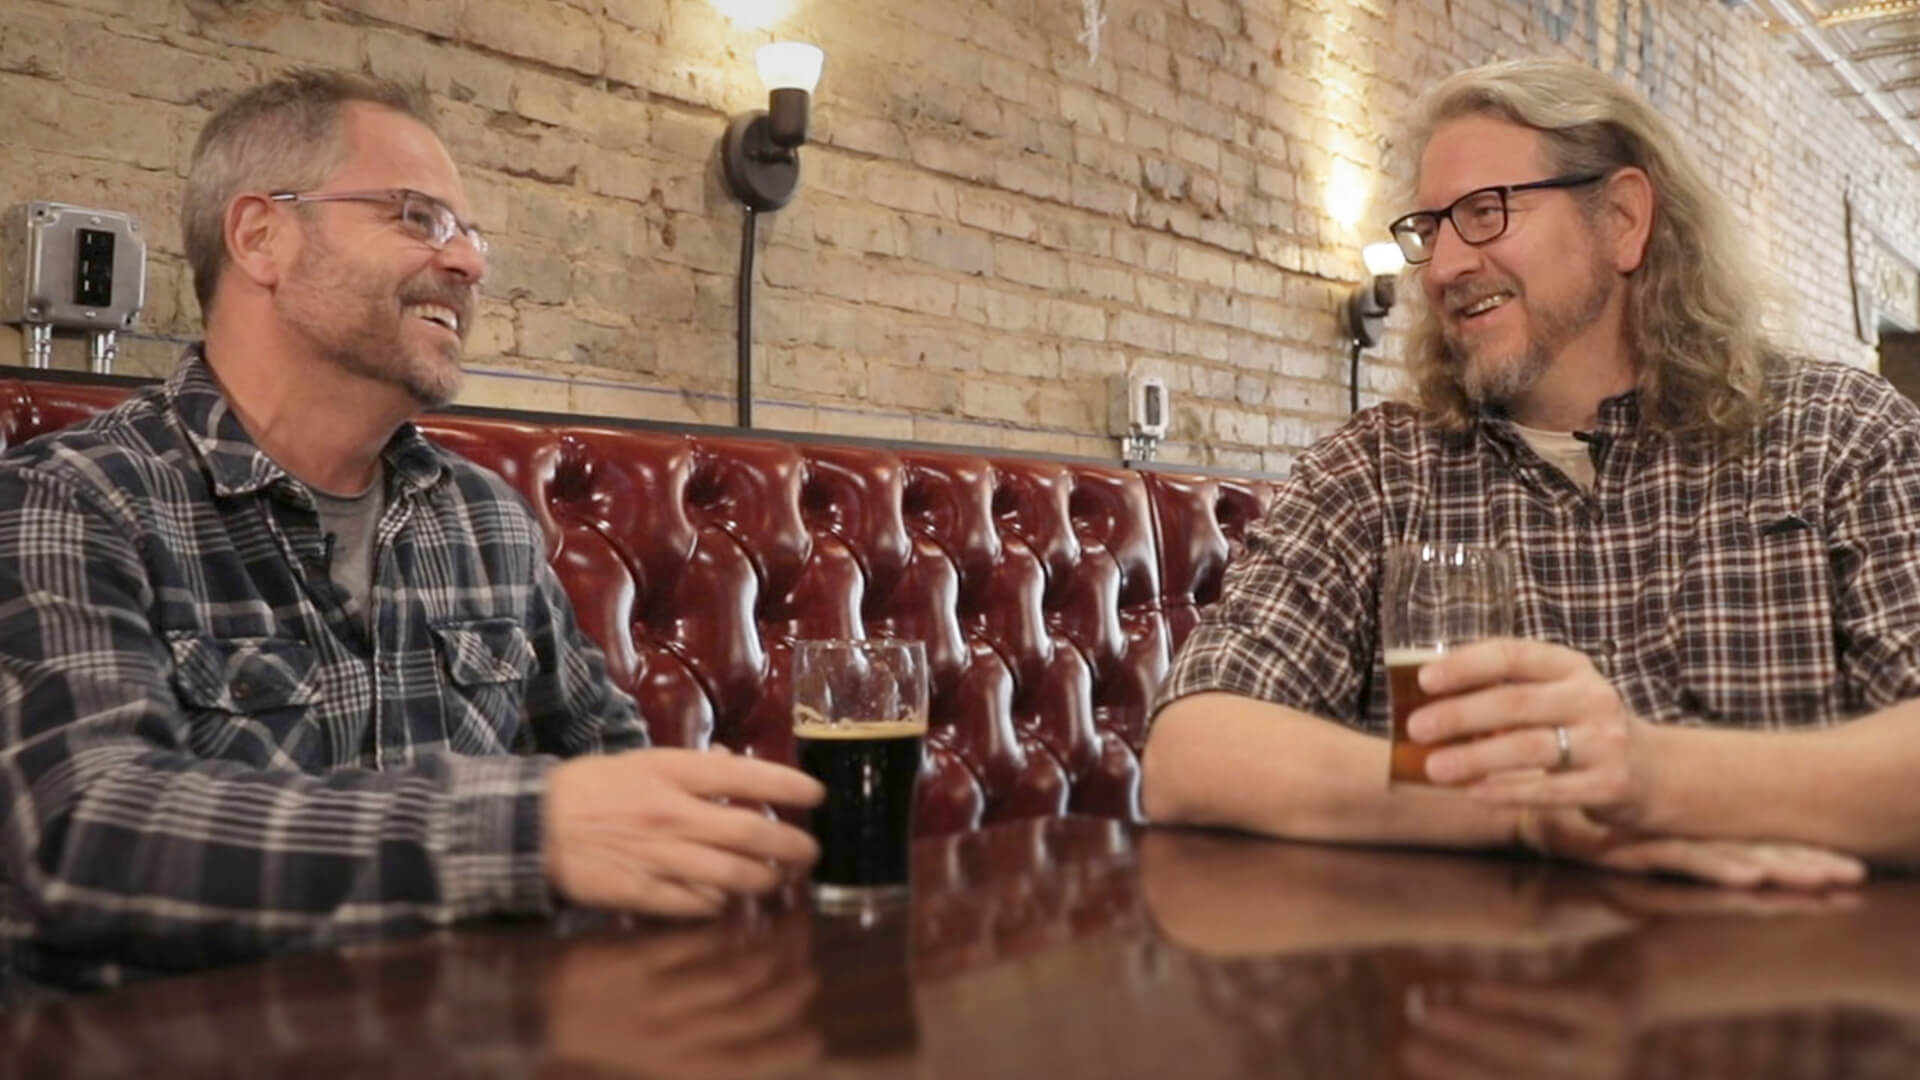 Two men in flannel shirts sitting in a booth together drinking beer and smiling